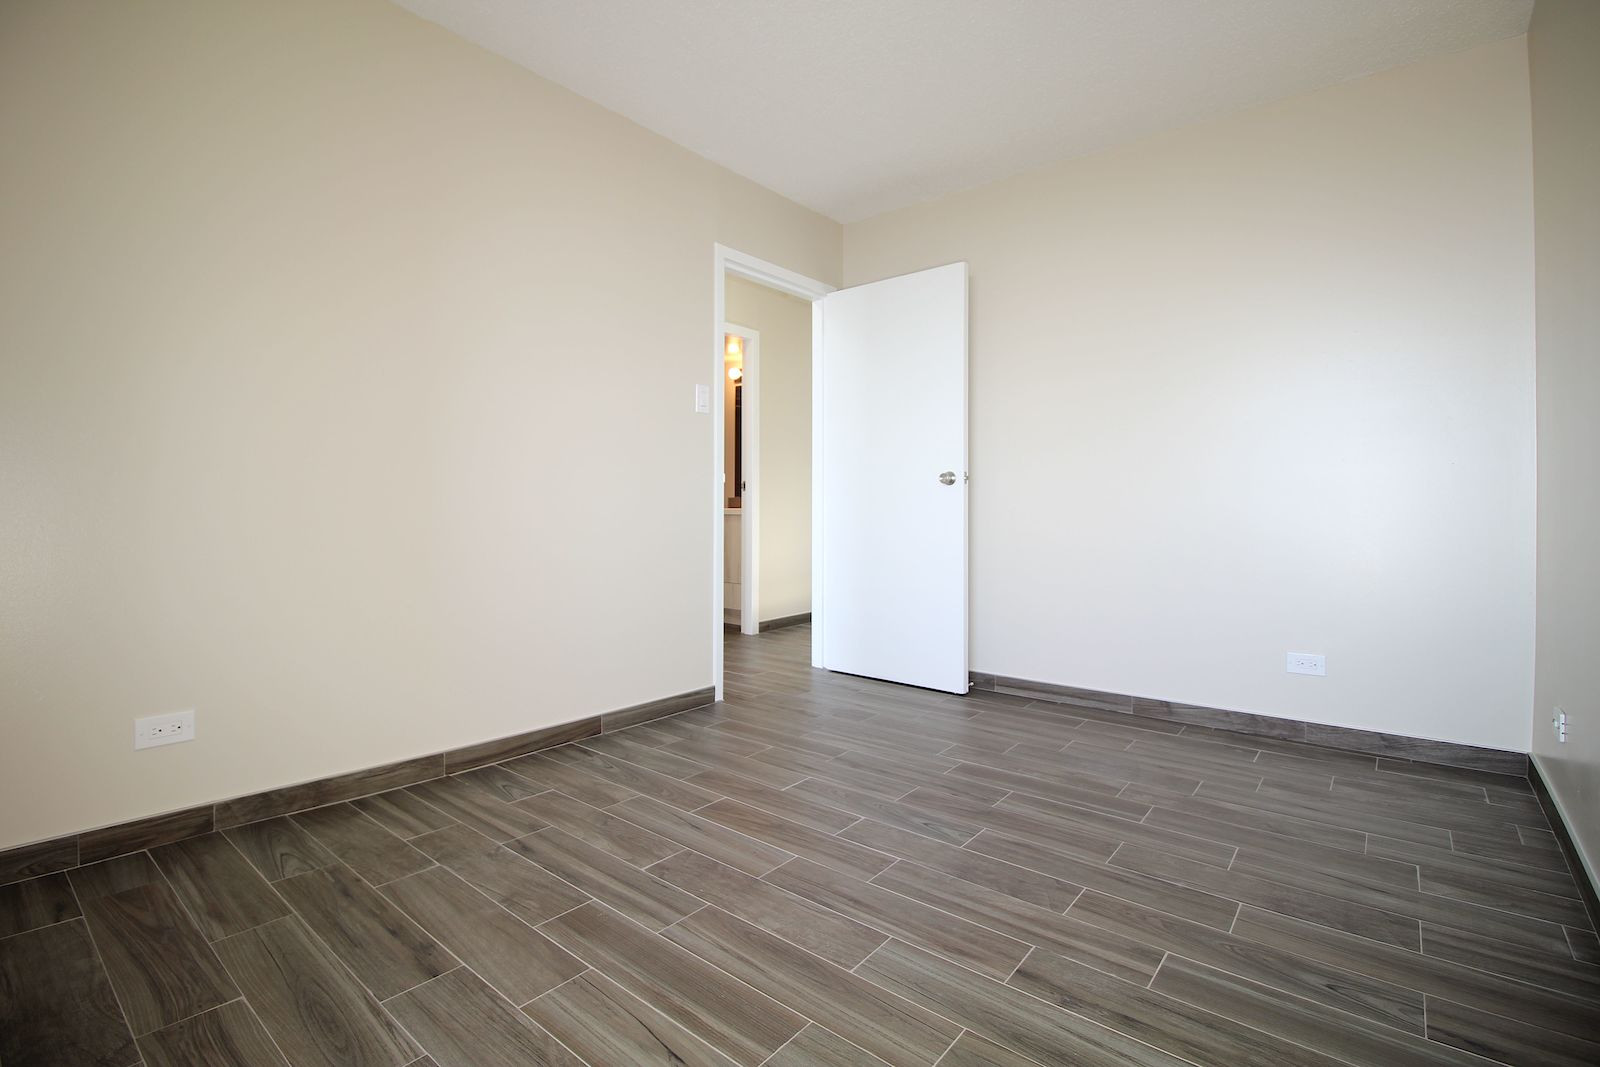 hardwood flooring installation cost calgary of calgary apartment for rent downtown heart of downtown this clean in completely renovated 2 bedroom stunning apartment